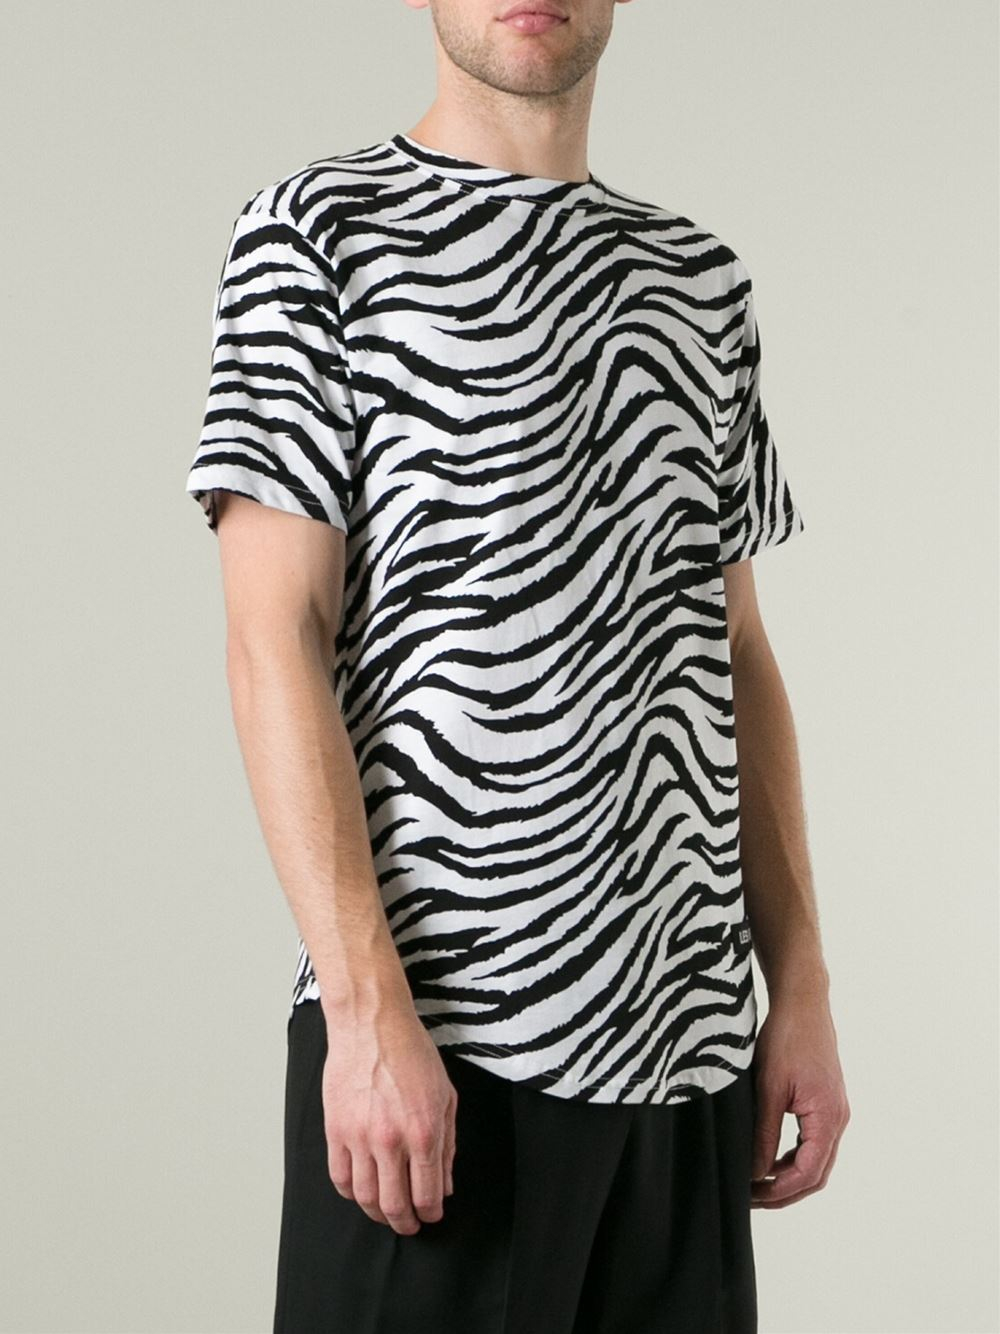 Lyst les art ists 39 margiela 57 39 zebra print football t for Print one t shirt